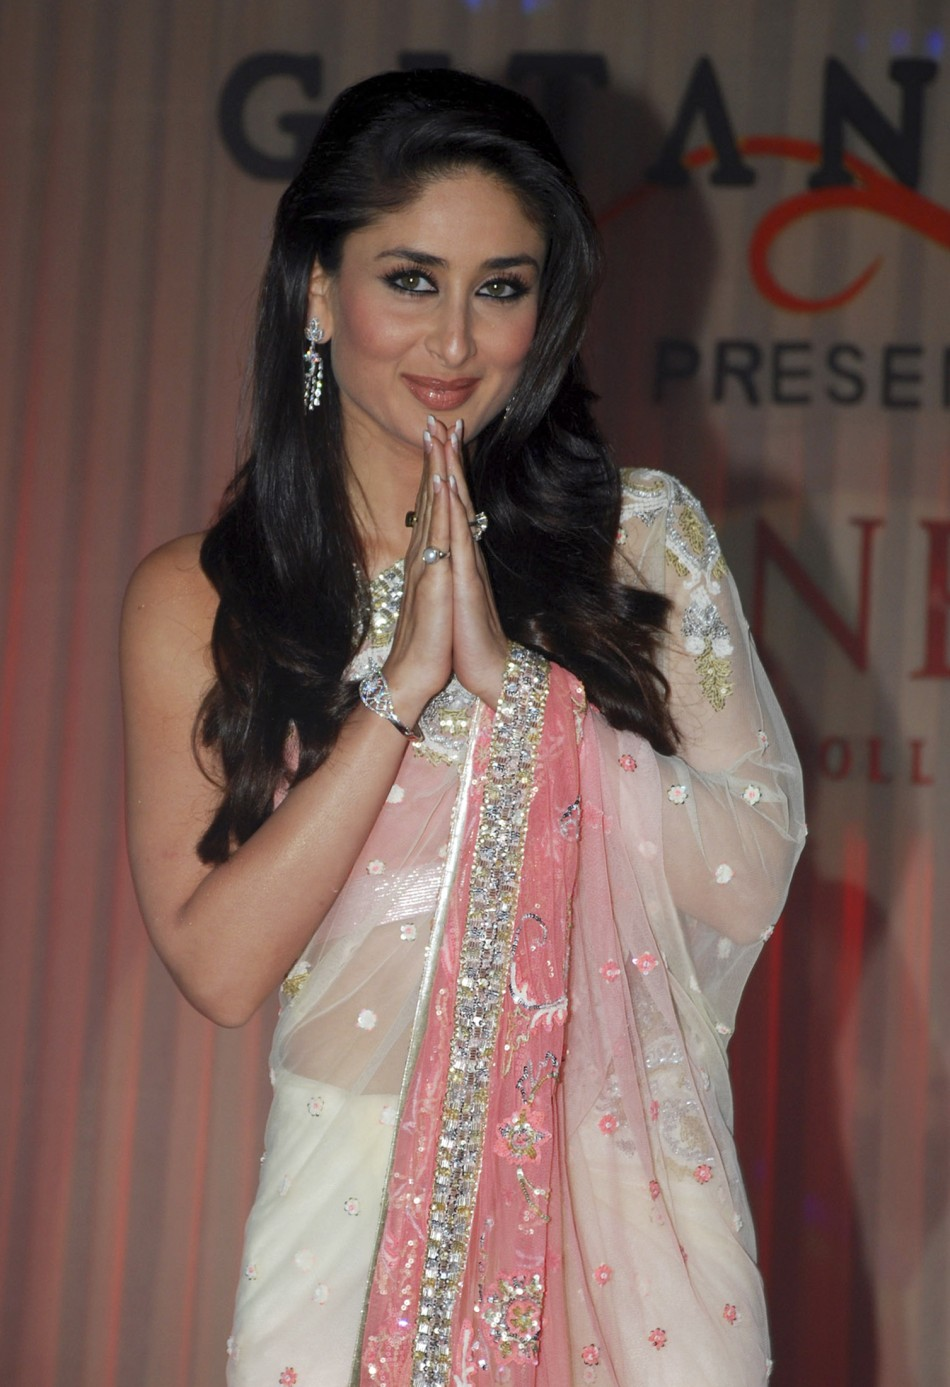 After Aishwarya Rai Bachchan, Kareena Kapoor Khan Turns Down 'Nach ...